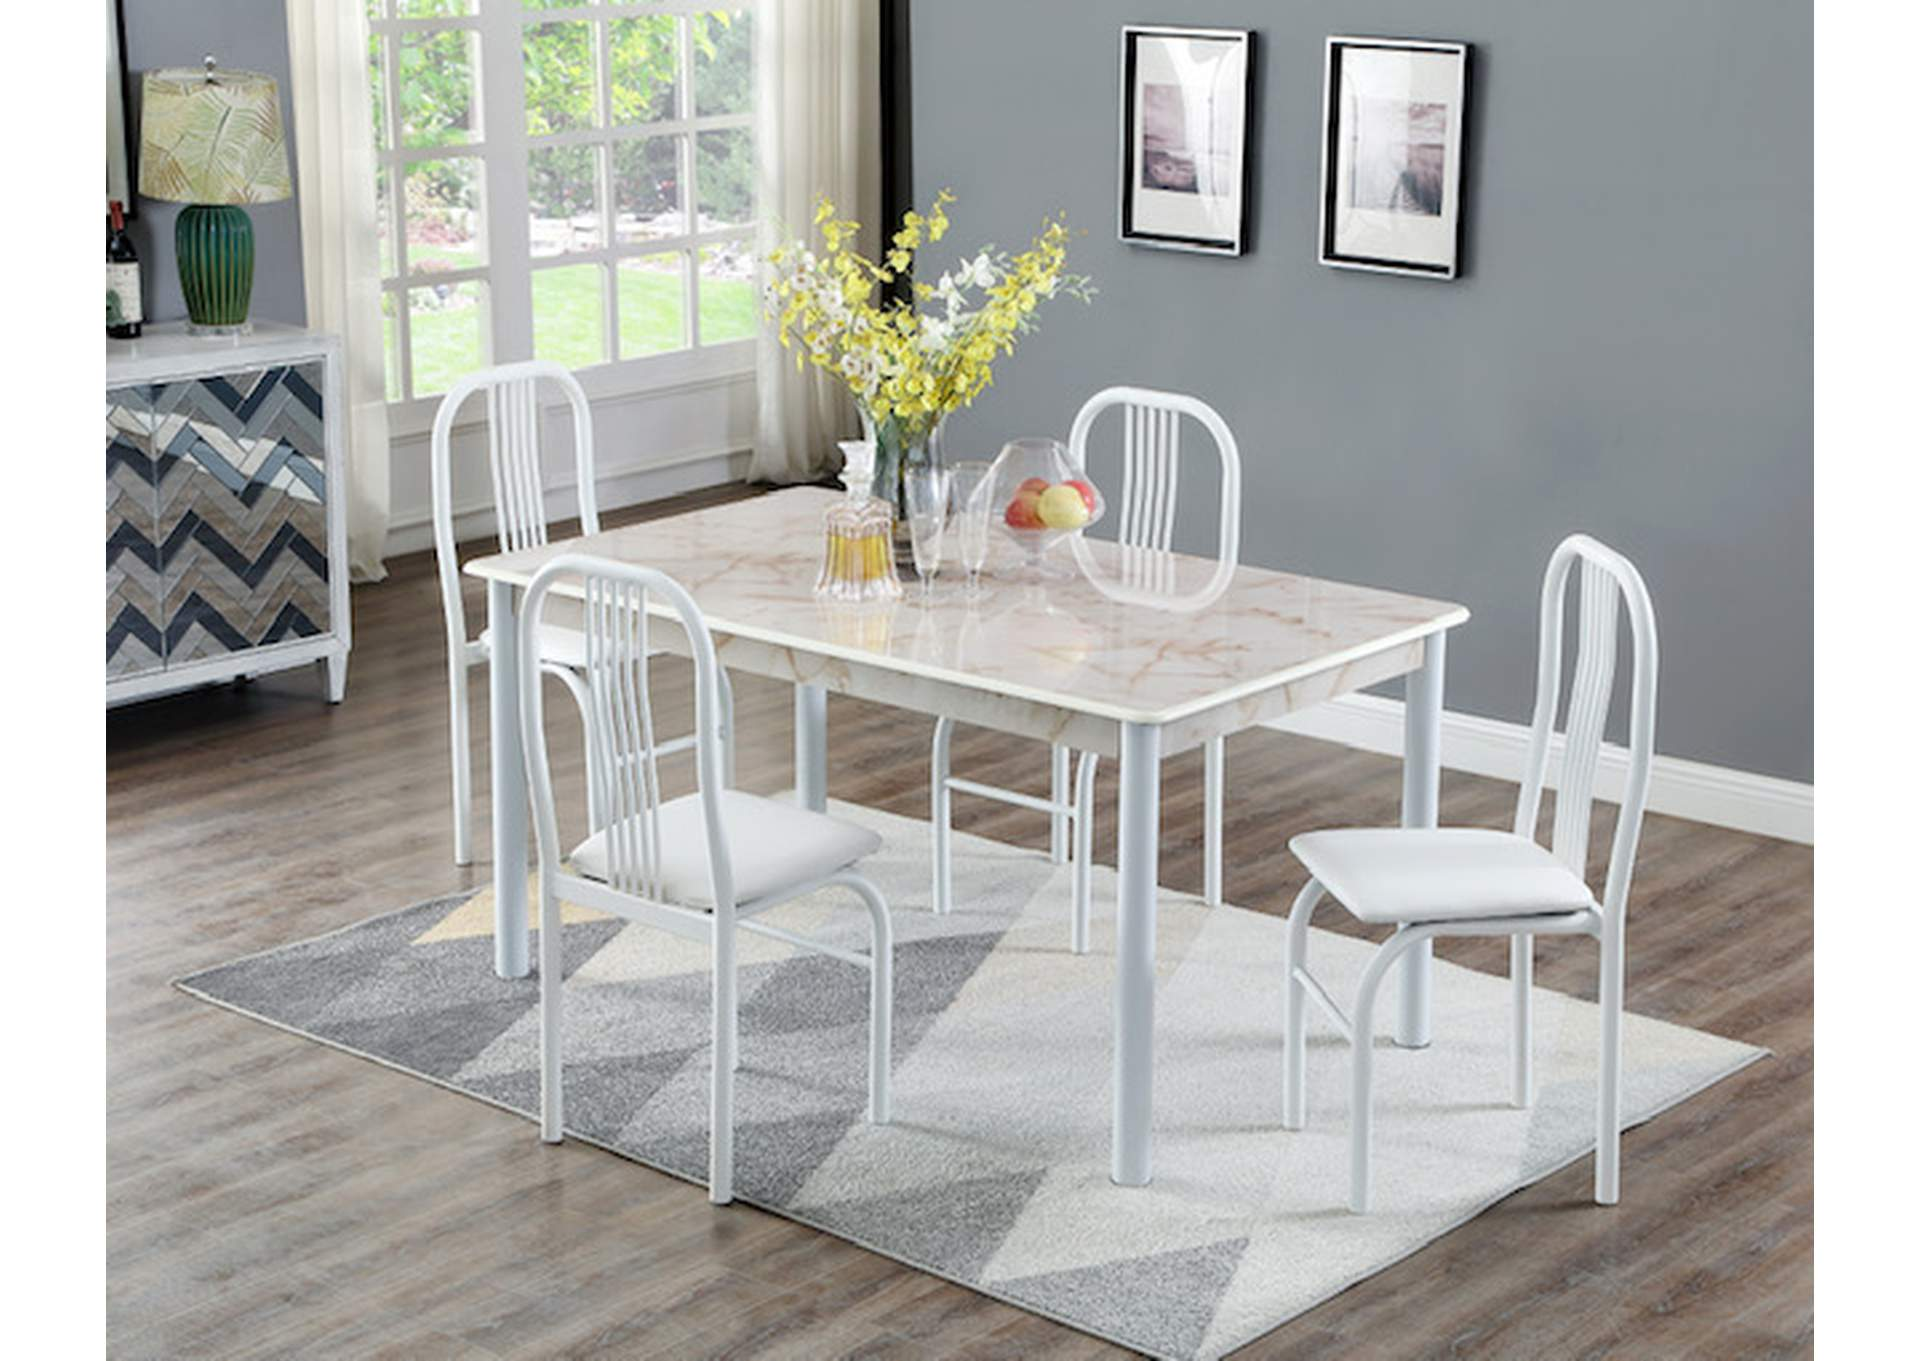 White Marble Top Welded Dinette W/ 4 chairs,Global Trading